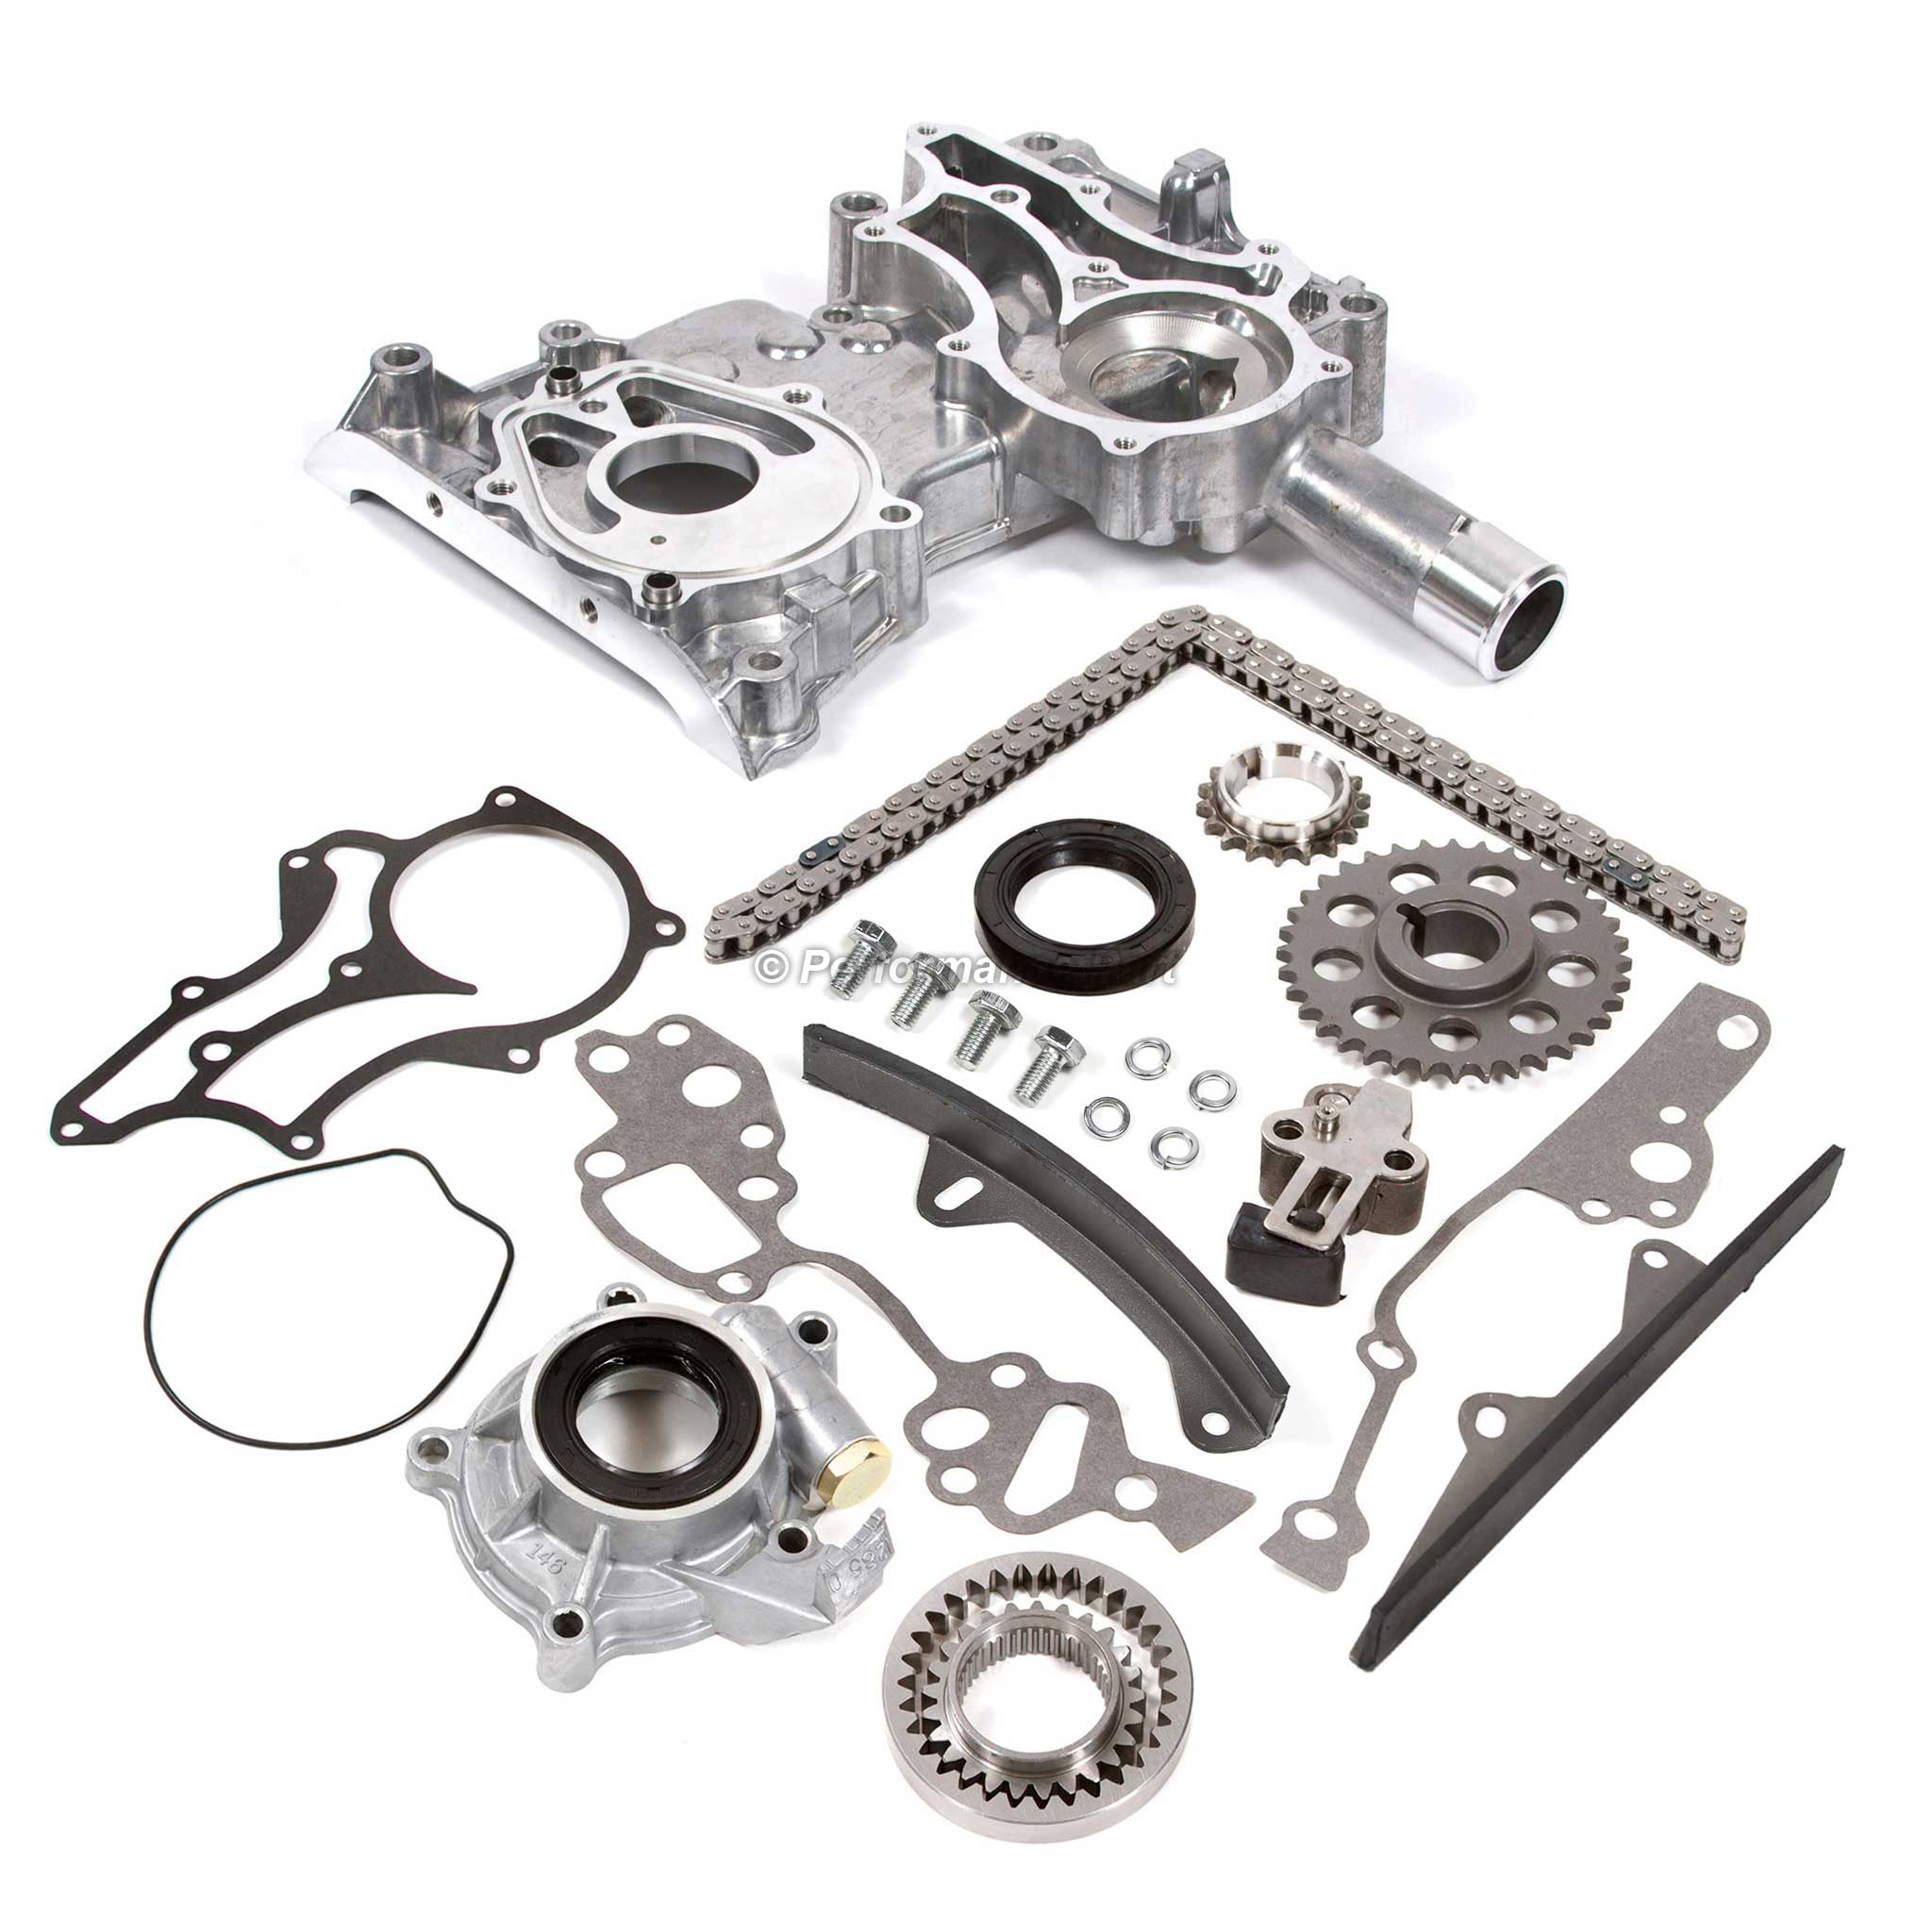 85 95 Toyota 22r 22re Timing Chain Kit W 2 Metal Guides